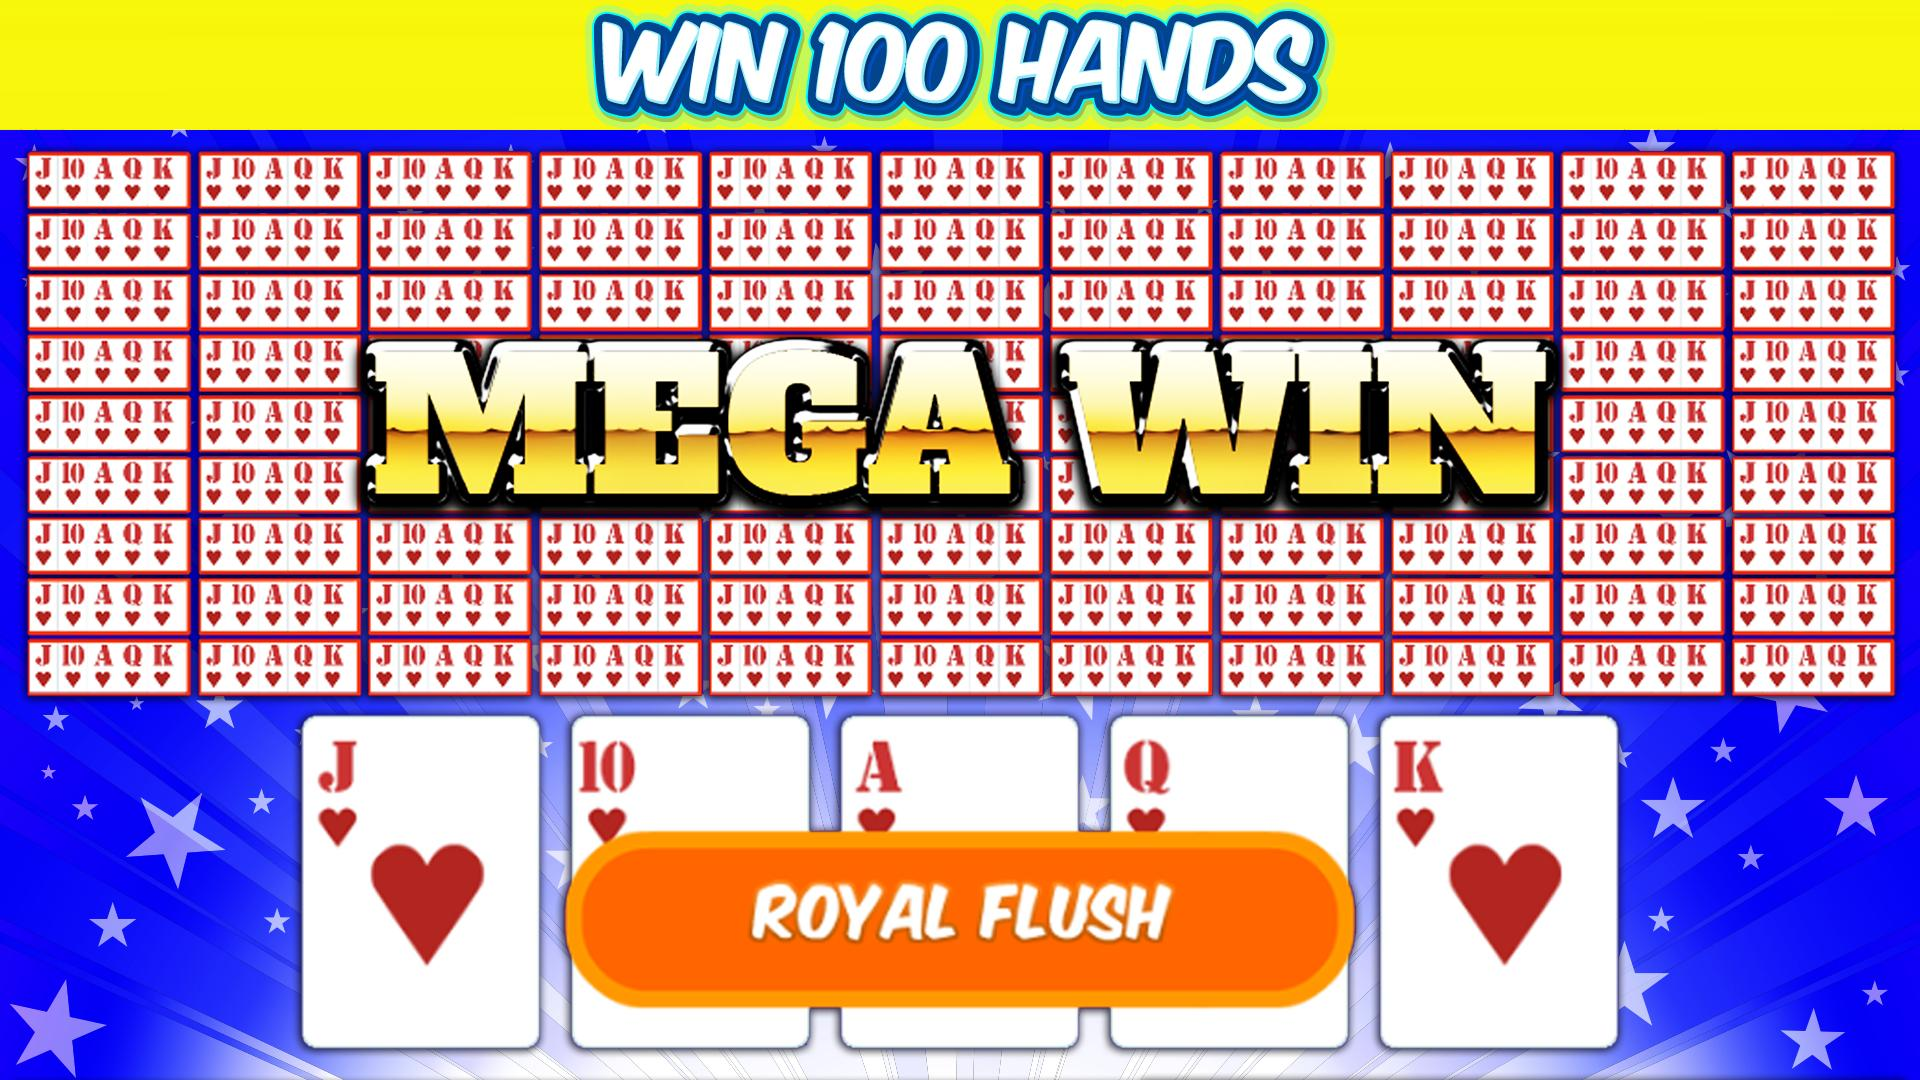 Free Video Poker Games Multi Hand Poker Casino For Android Apk